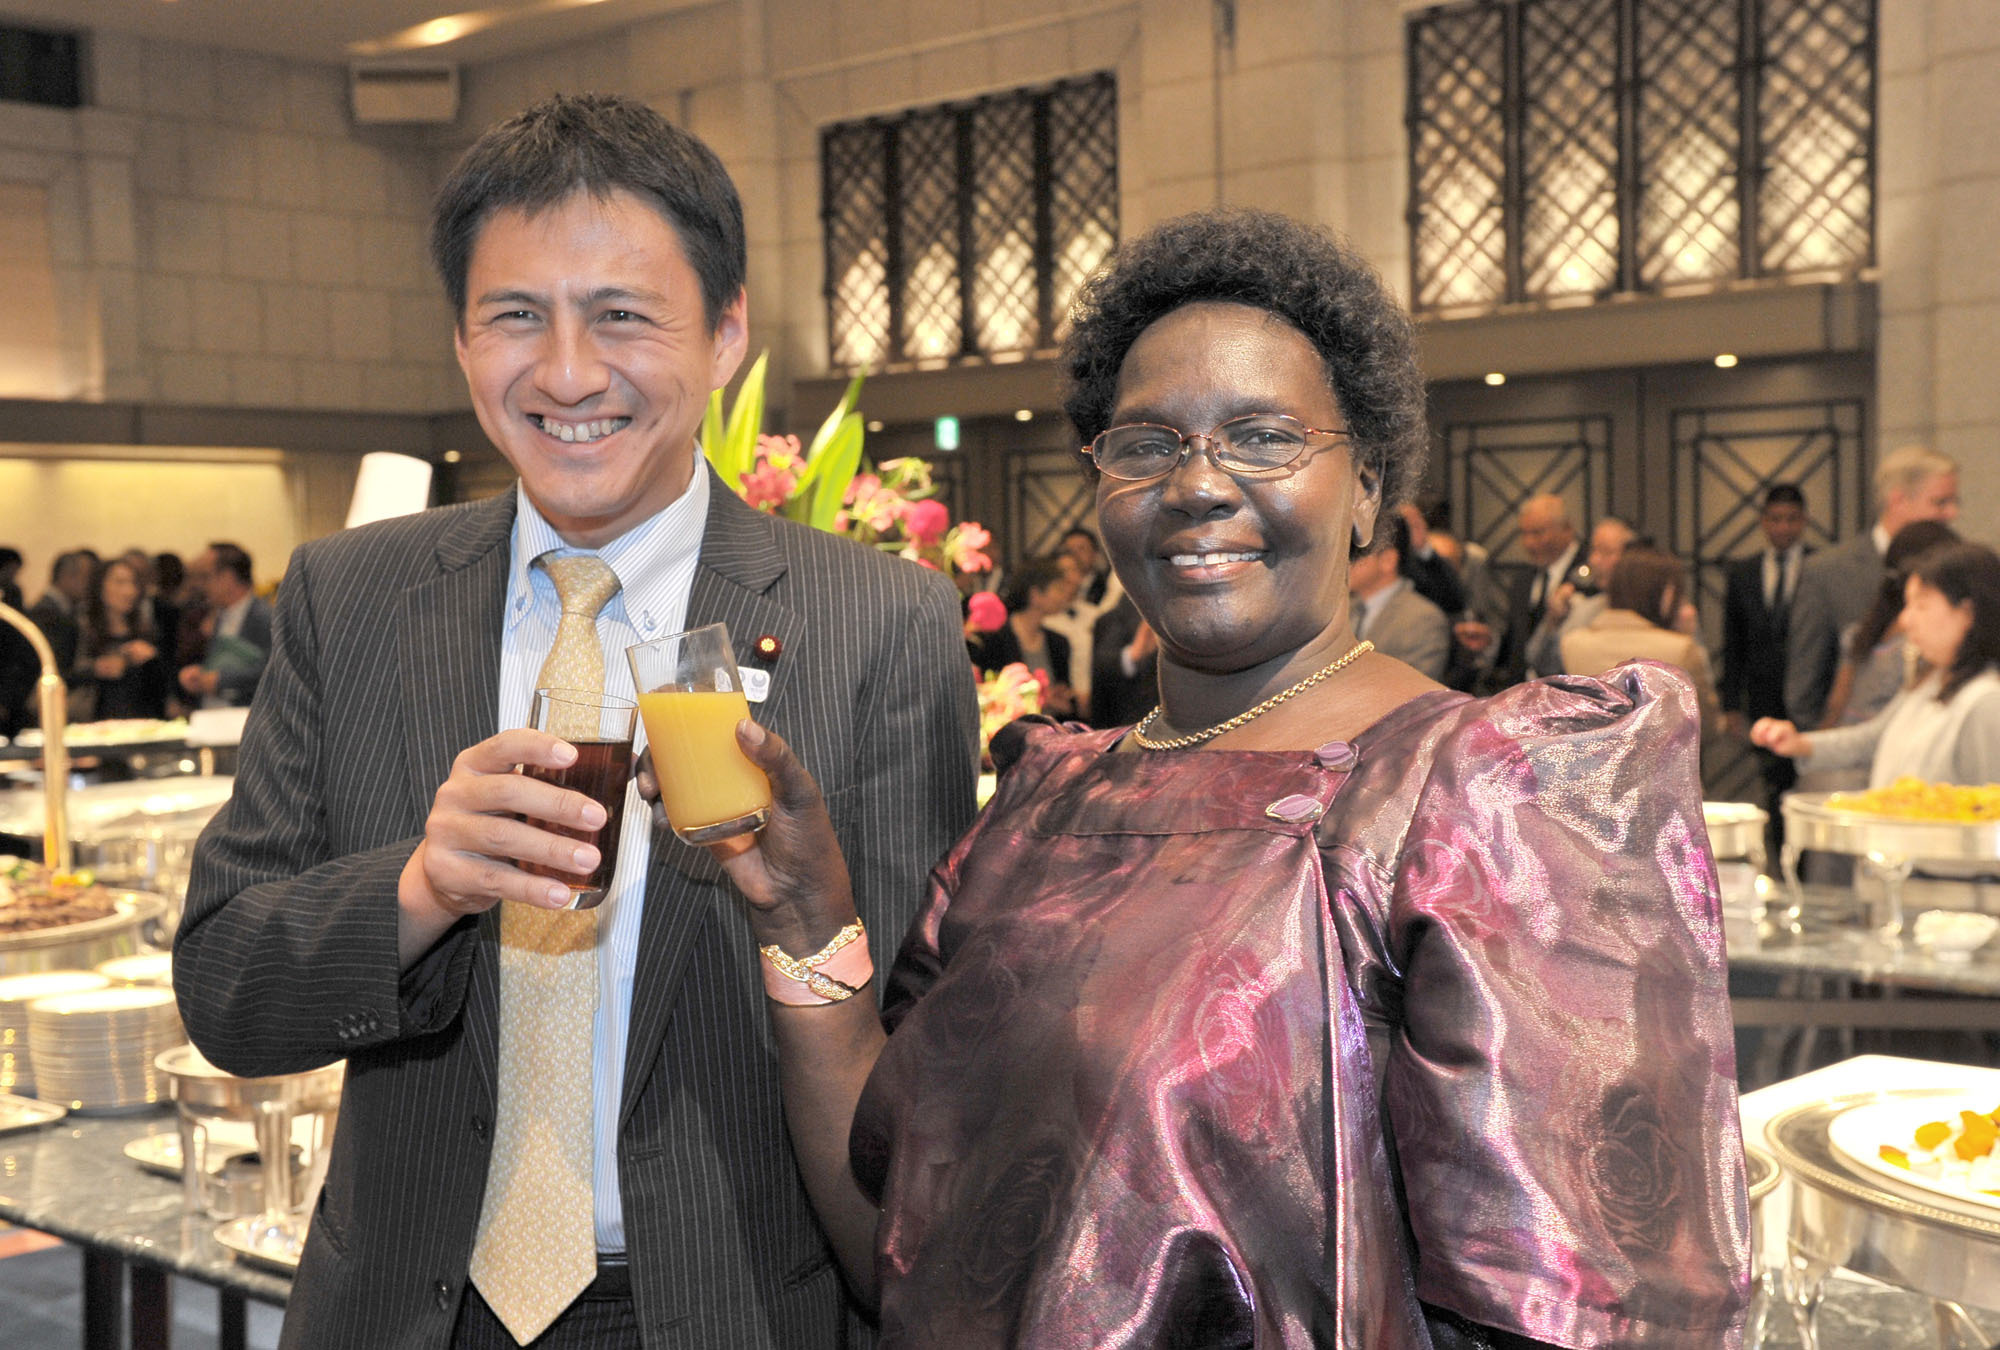 Uganda's Ambassador Betty Grace Akech-Okullo (right) shares a toast with Parliamentary Vice Minister for Foreign Affairs and House of Representatives member Shunsuke Takei at a reception to celebrate the country's 54th anniversary of independence at the Hotel Okura, Tokyo, on Oct. 9. | YOSHIAKI MIURA